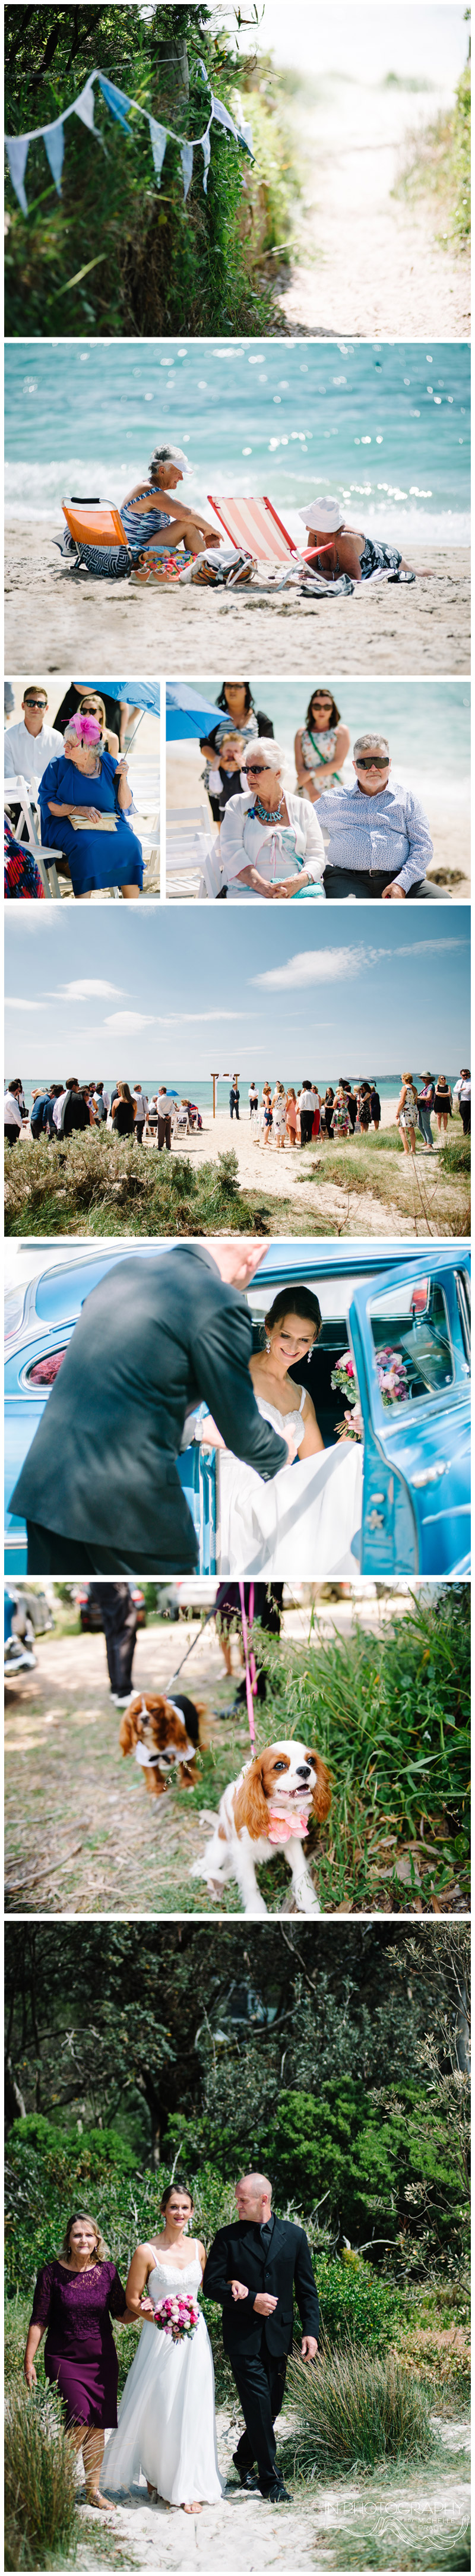 McRae beach wedding ceremony